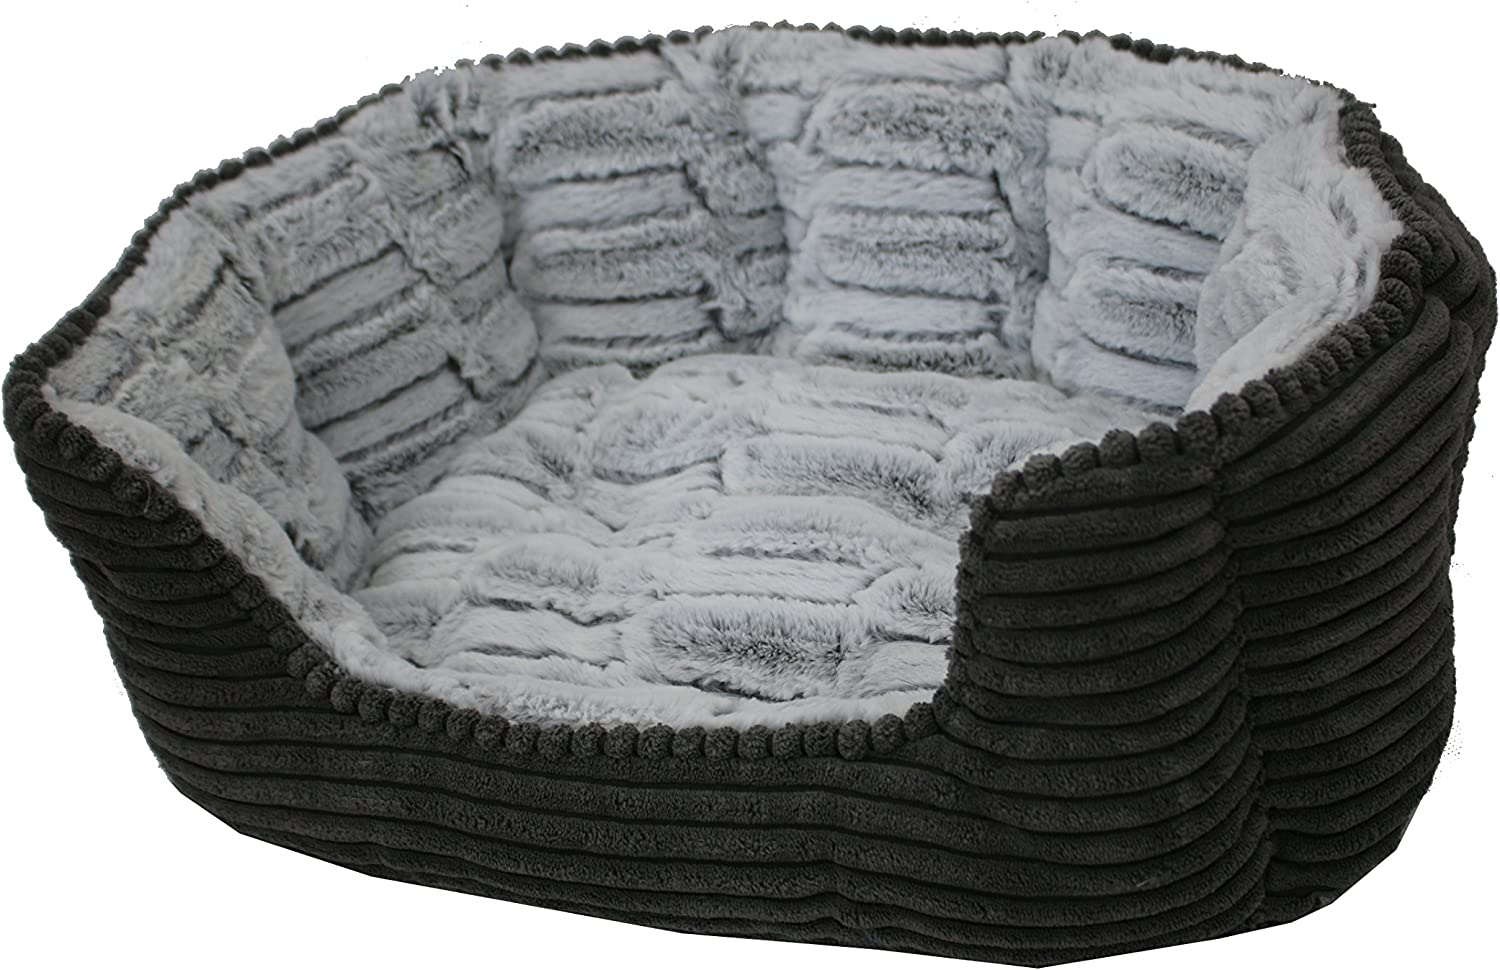 PETSPACES Corduroy Divided Bed 19 X15